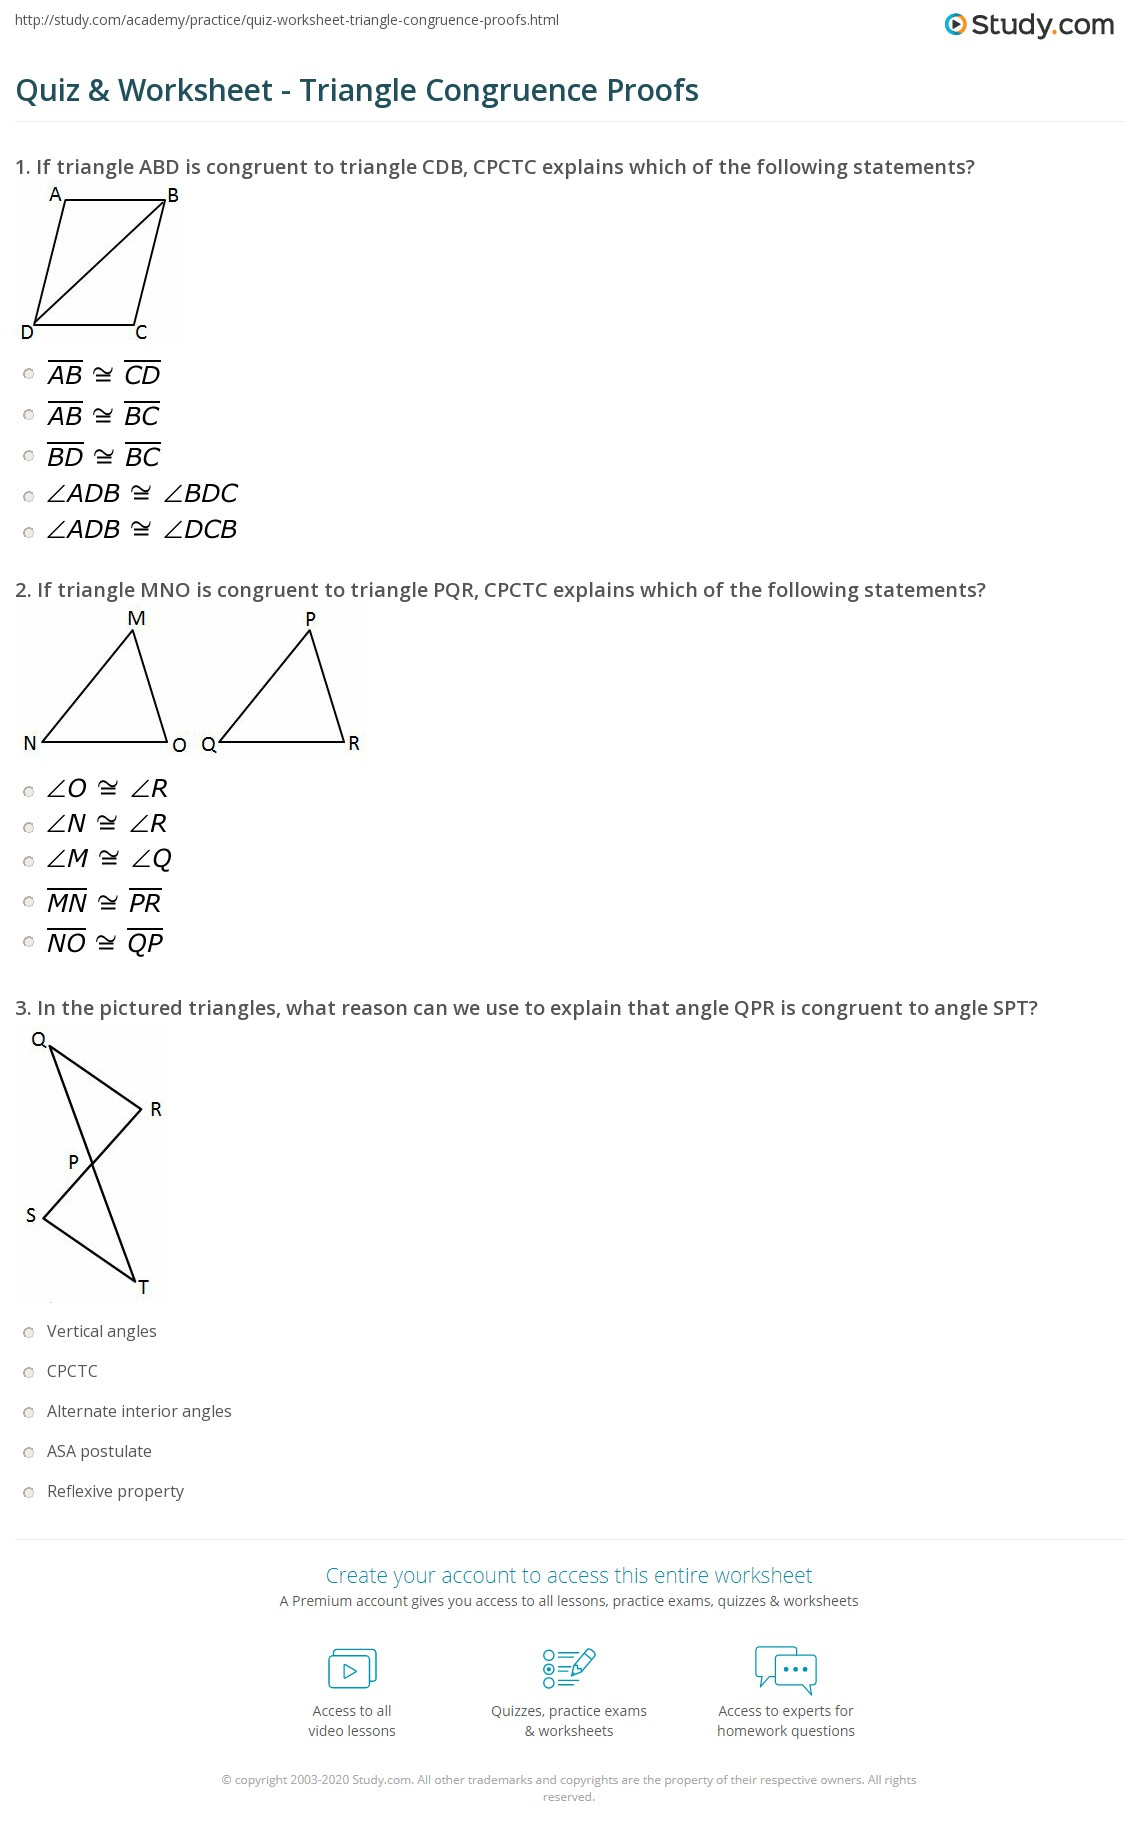 hight resolution of Quiz \u0026 Worksheet - Triangle Congruence Proofs   Study.com